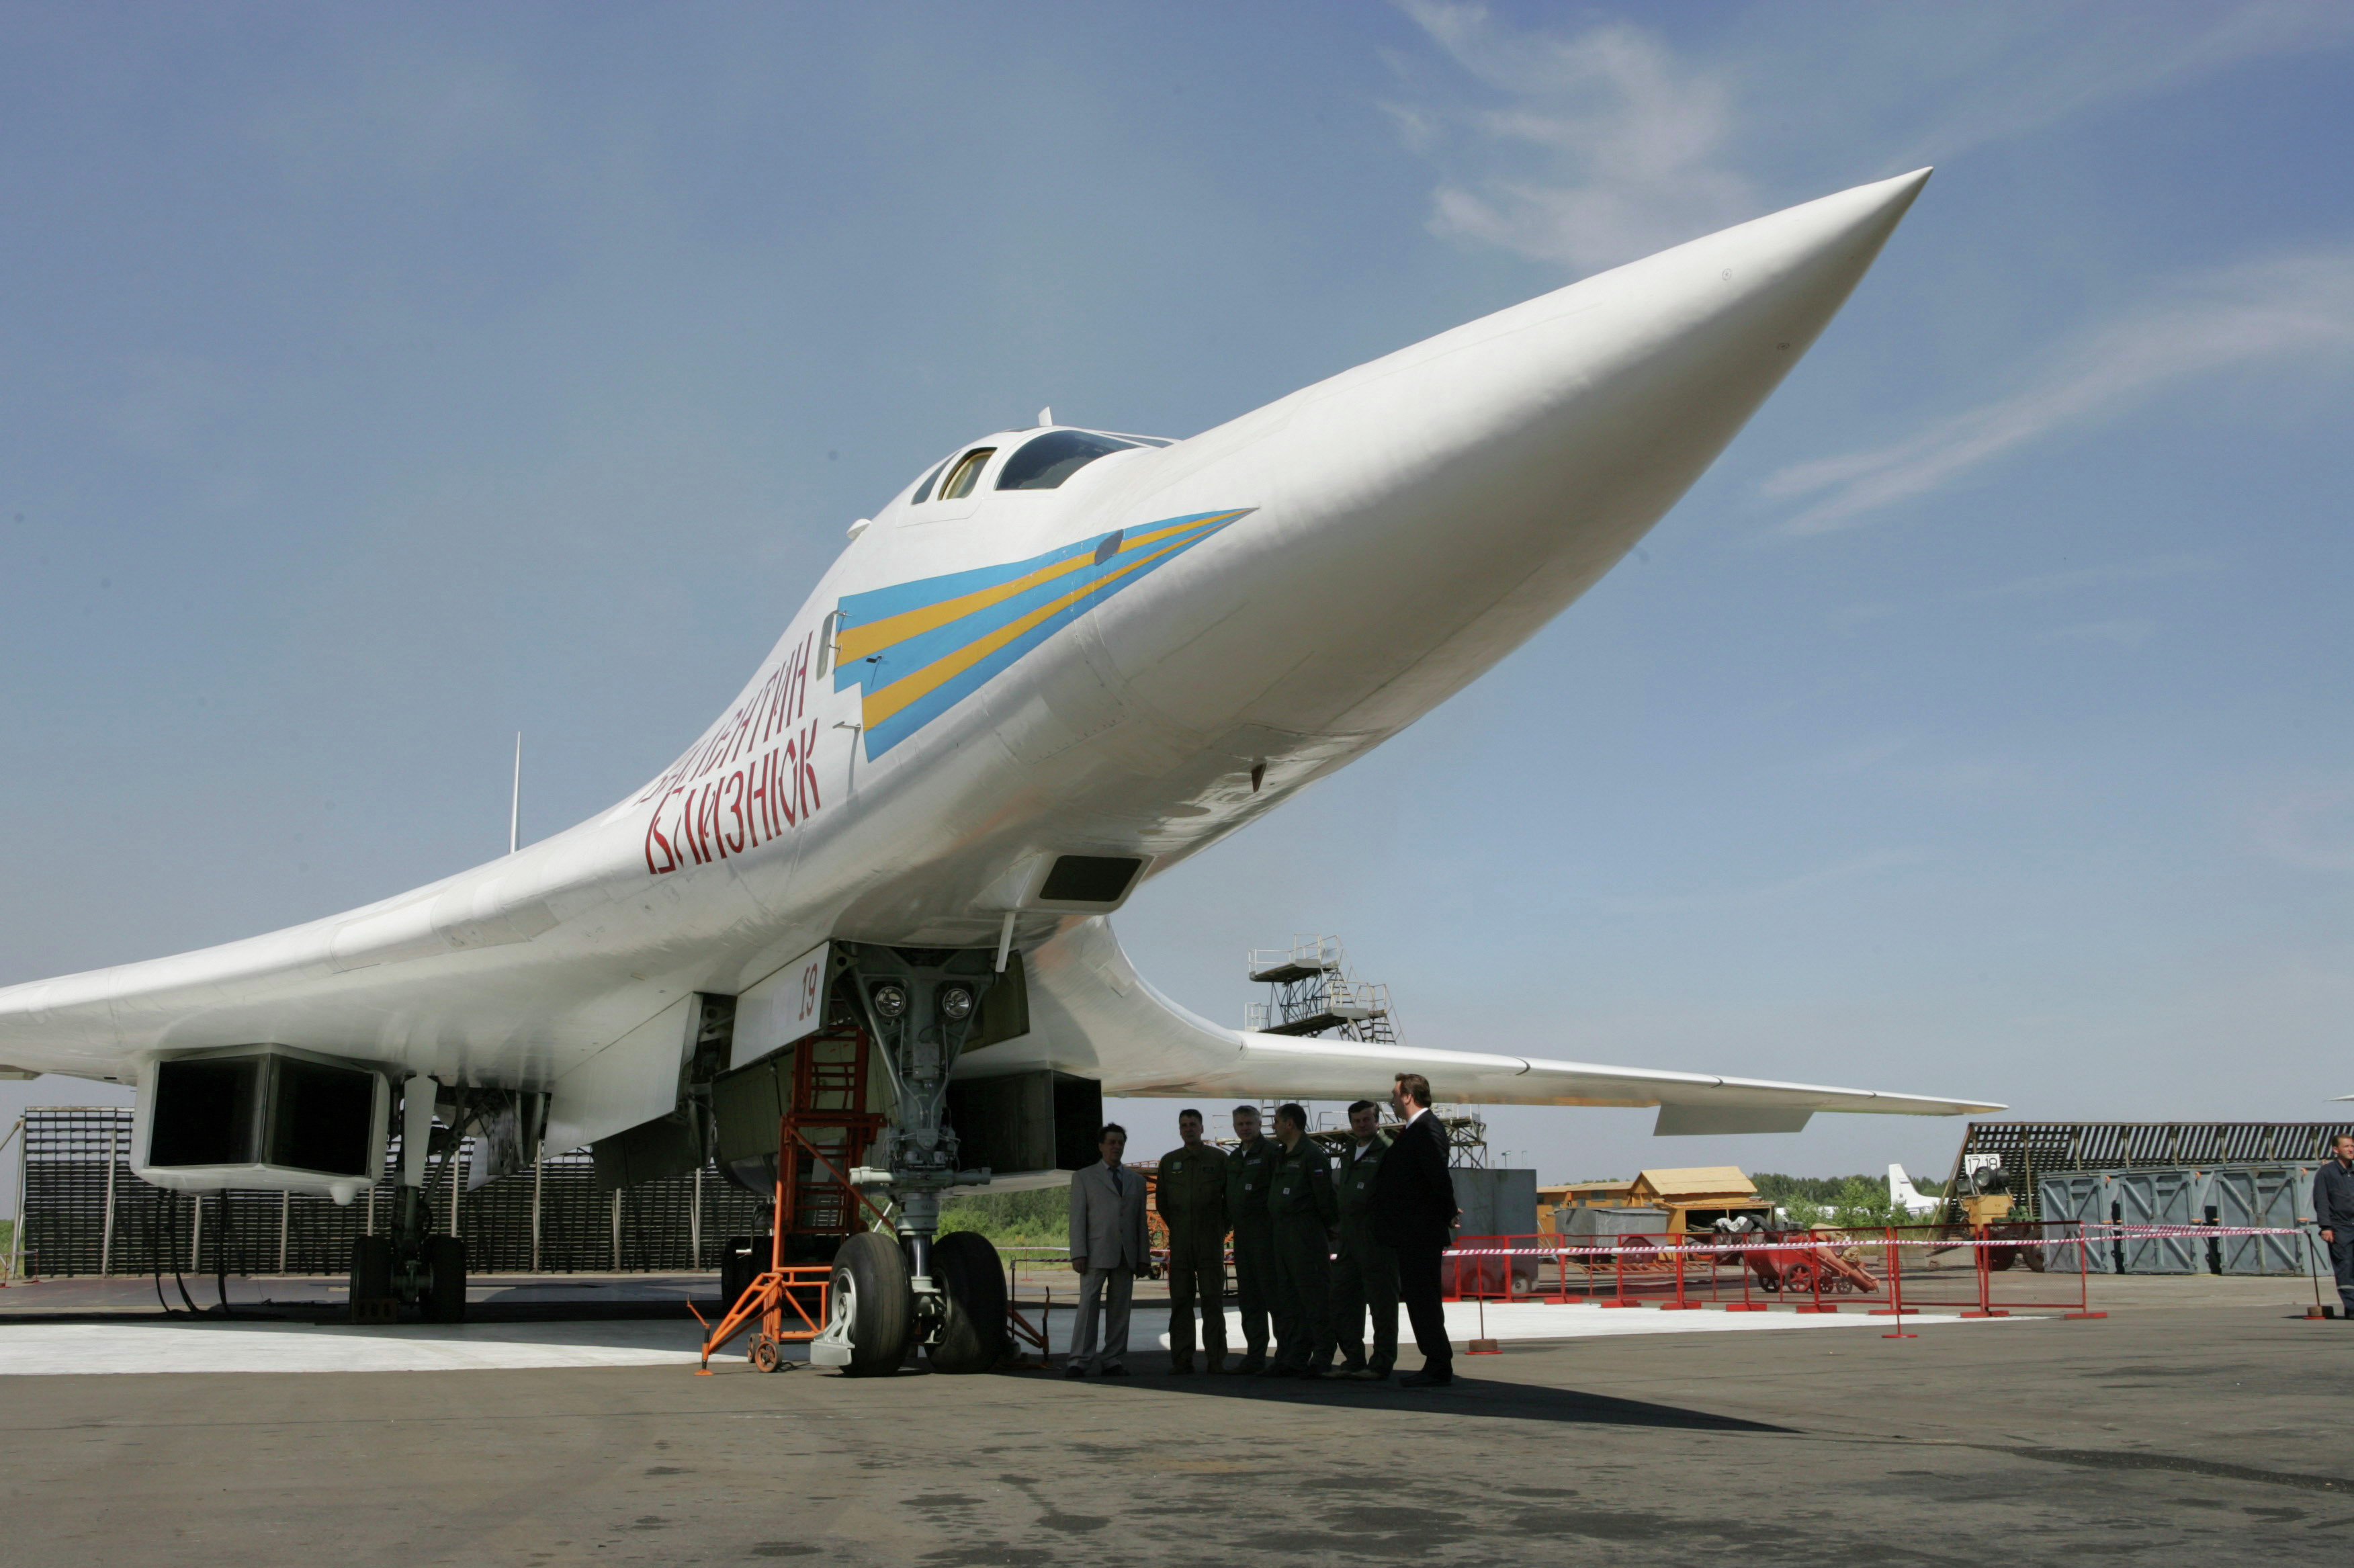 Russian supersonic Tu-160 strategic bomber seen at an airfield near Kazan, about 700 kilometers (450 miles) east of Moscow. file photo